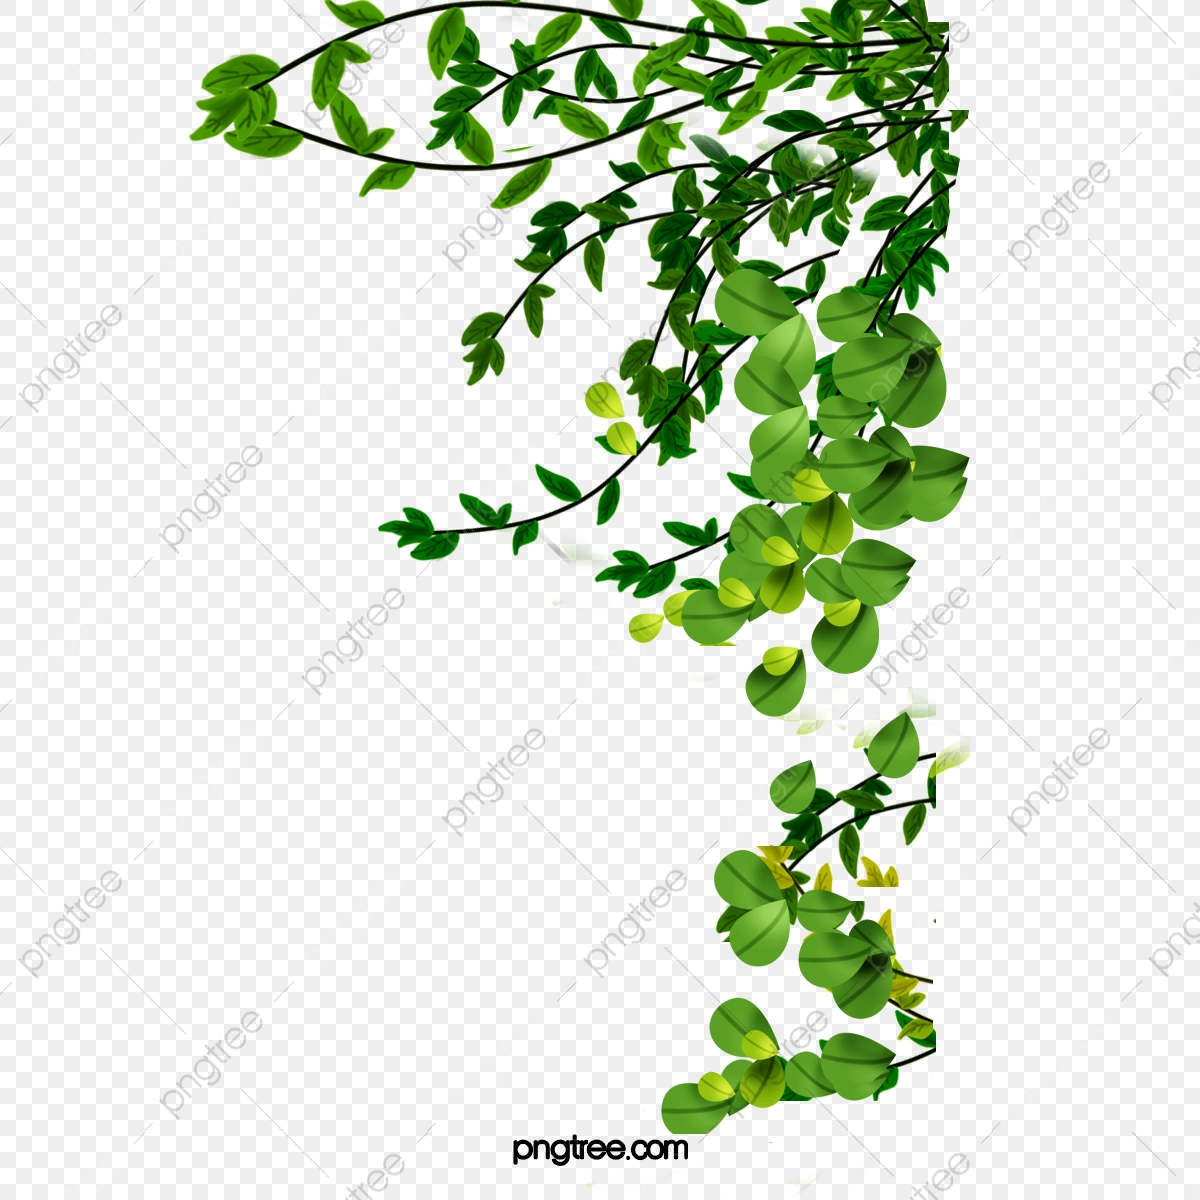 Hand Drawn Cute Green Leaves Branch, Spring, Garden, Drawing PNG  Transparent Clipart Image and PSD File for Free Download